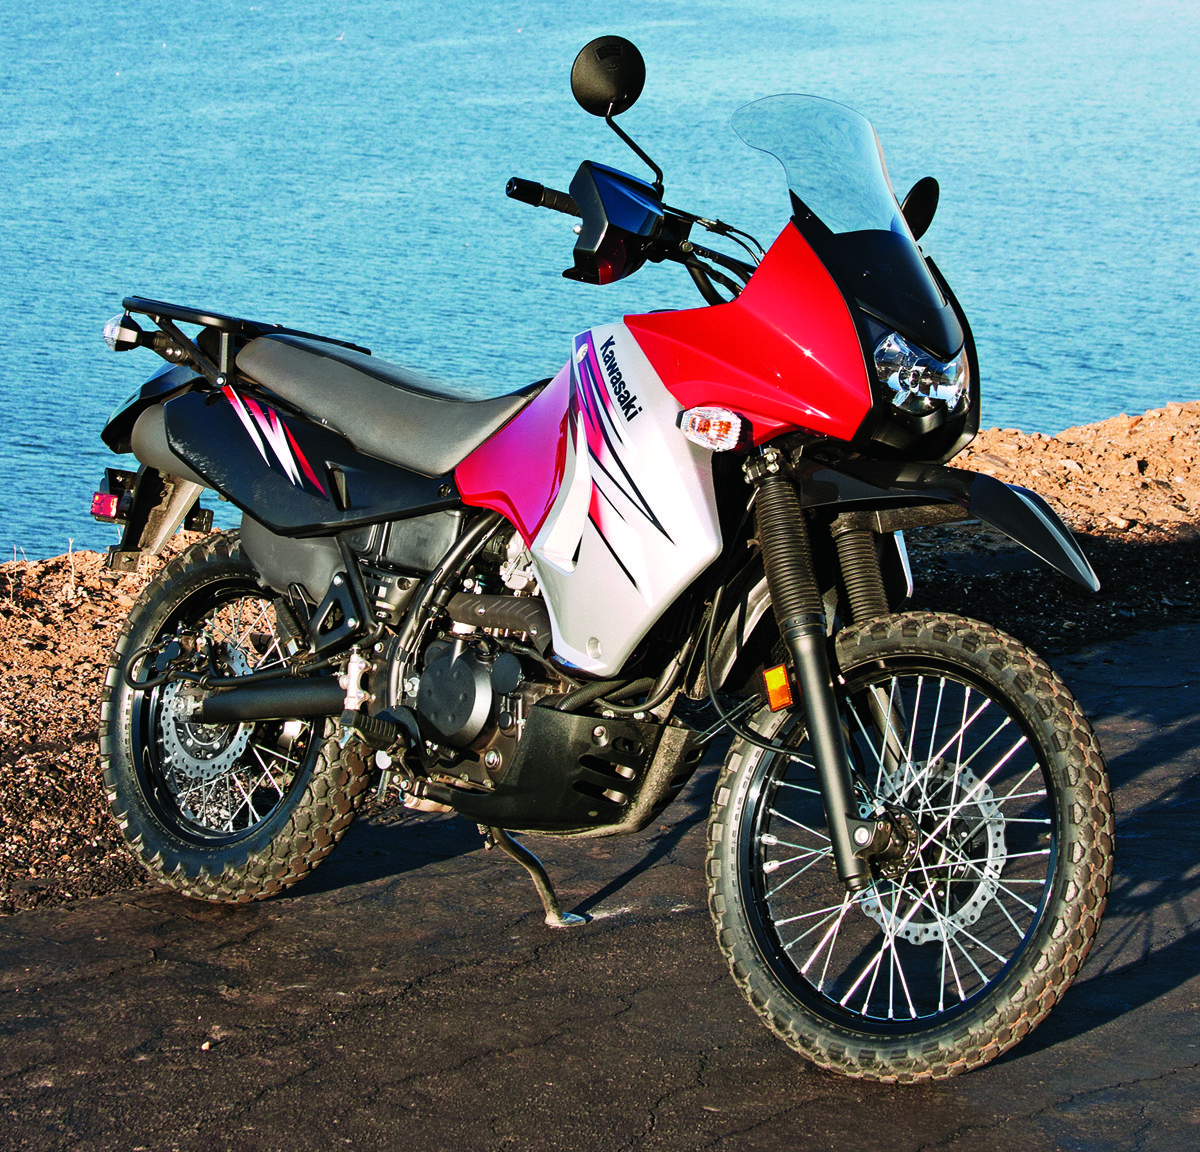 2012 Kawasaki Klr650 Which Was Featured In A Comparison With The